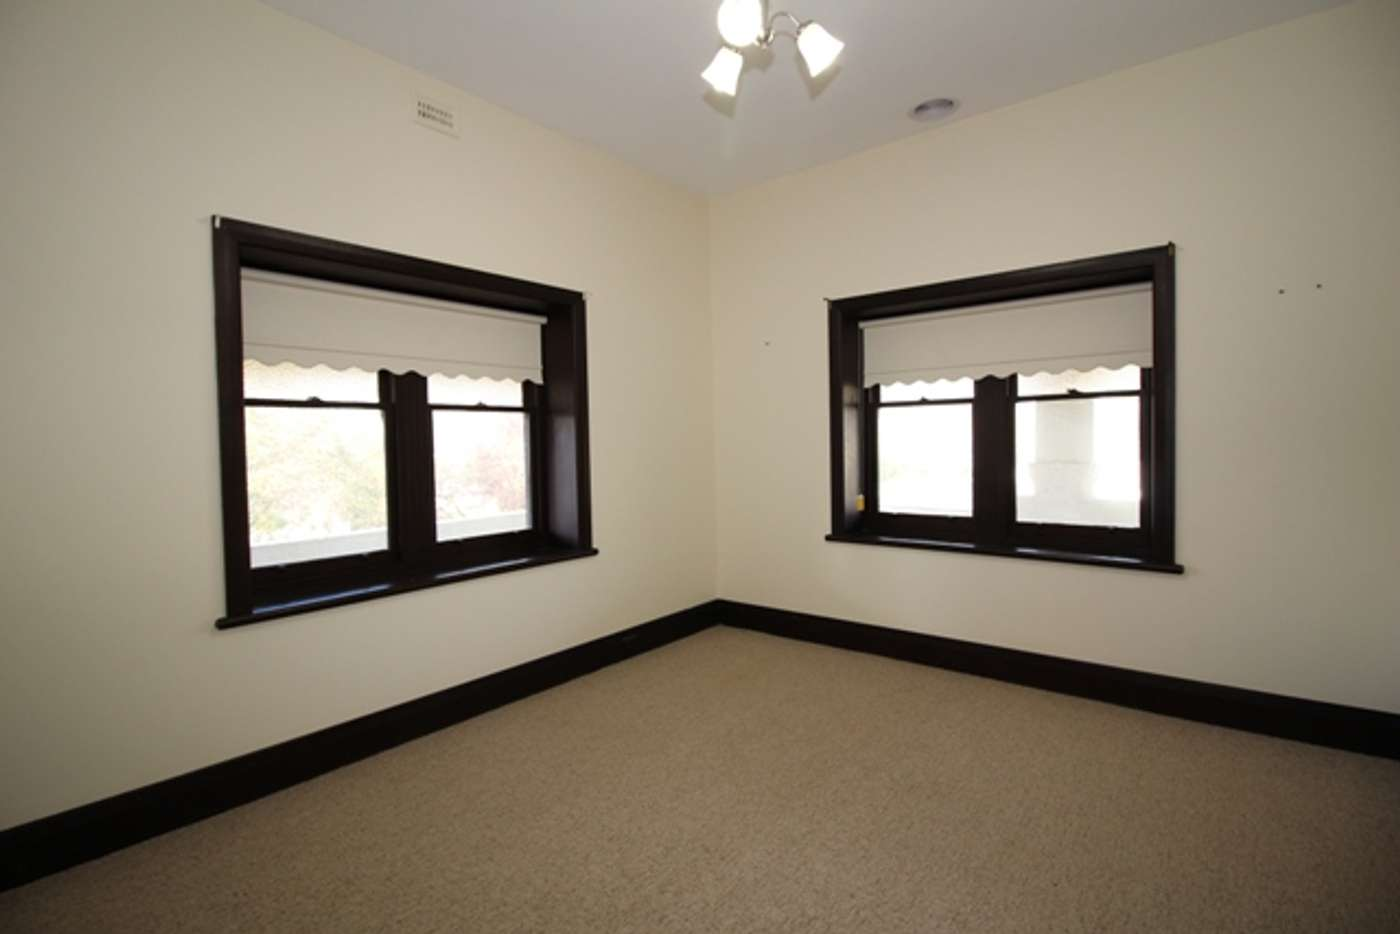 Sixth view of Homely house listing, 72 Ferrers Street, Mount Gambier SA 5290